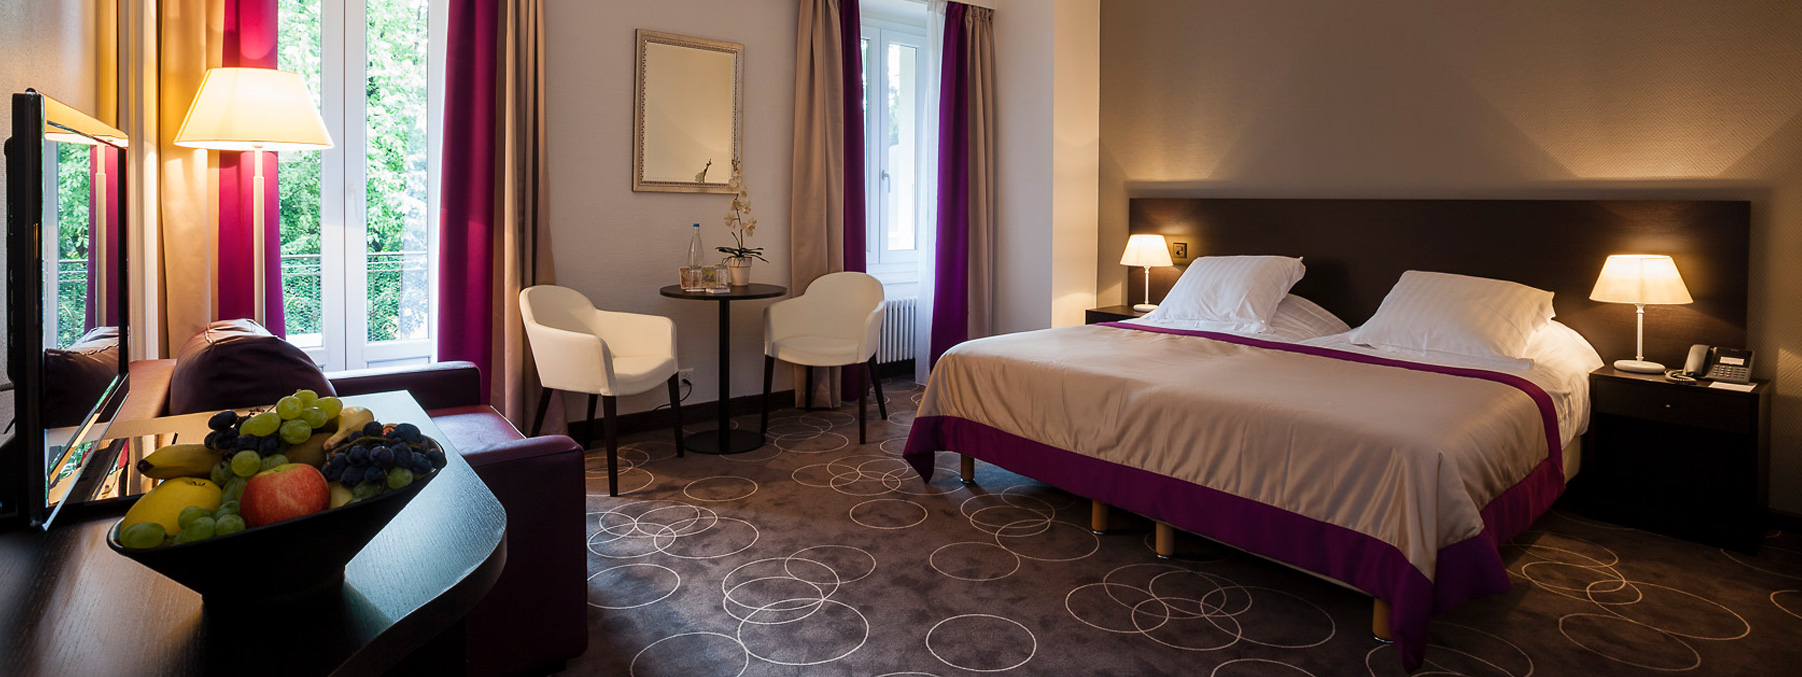 All our rooms have been refurbished!